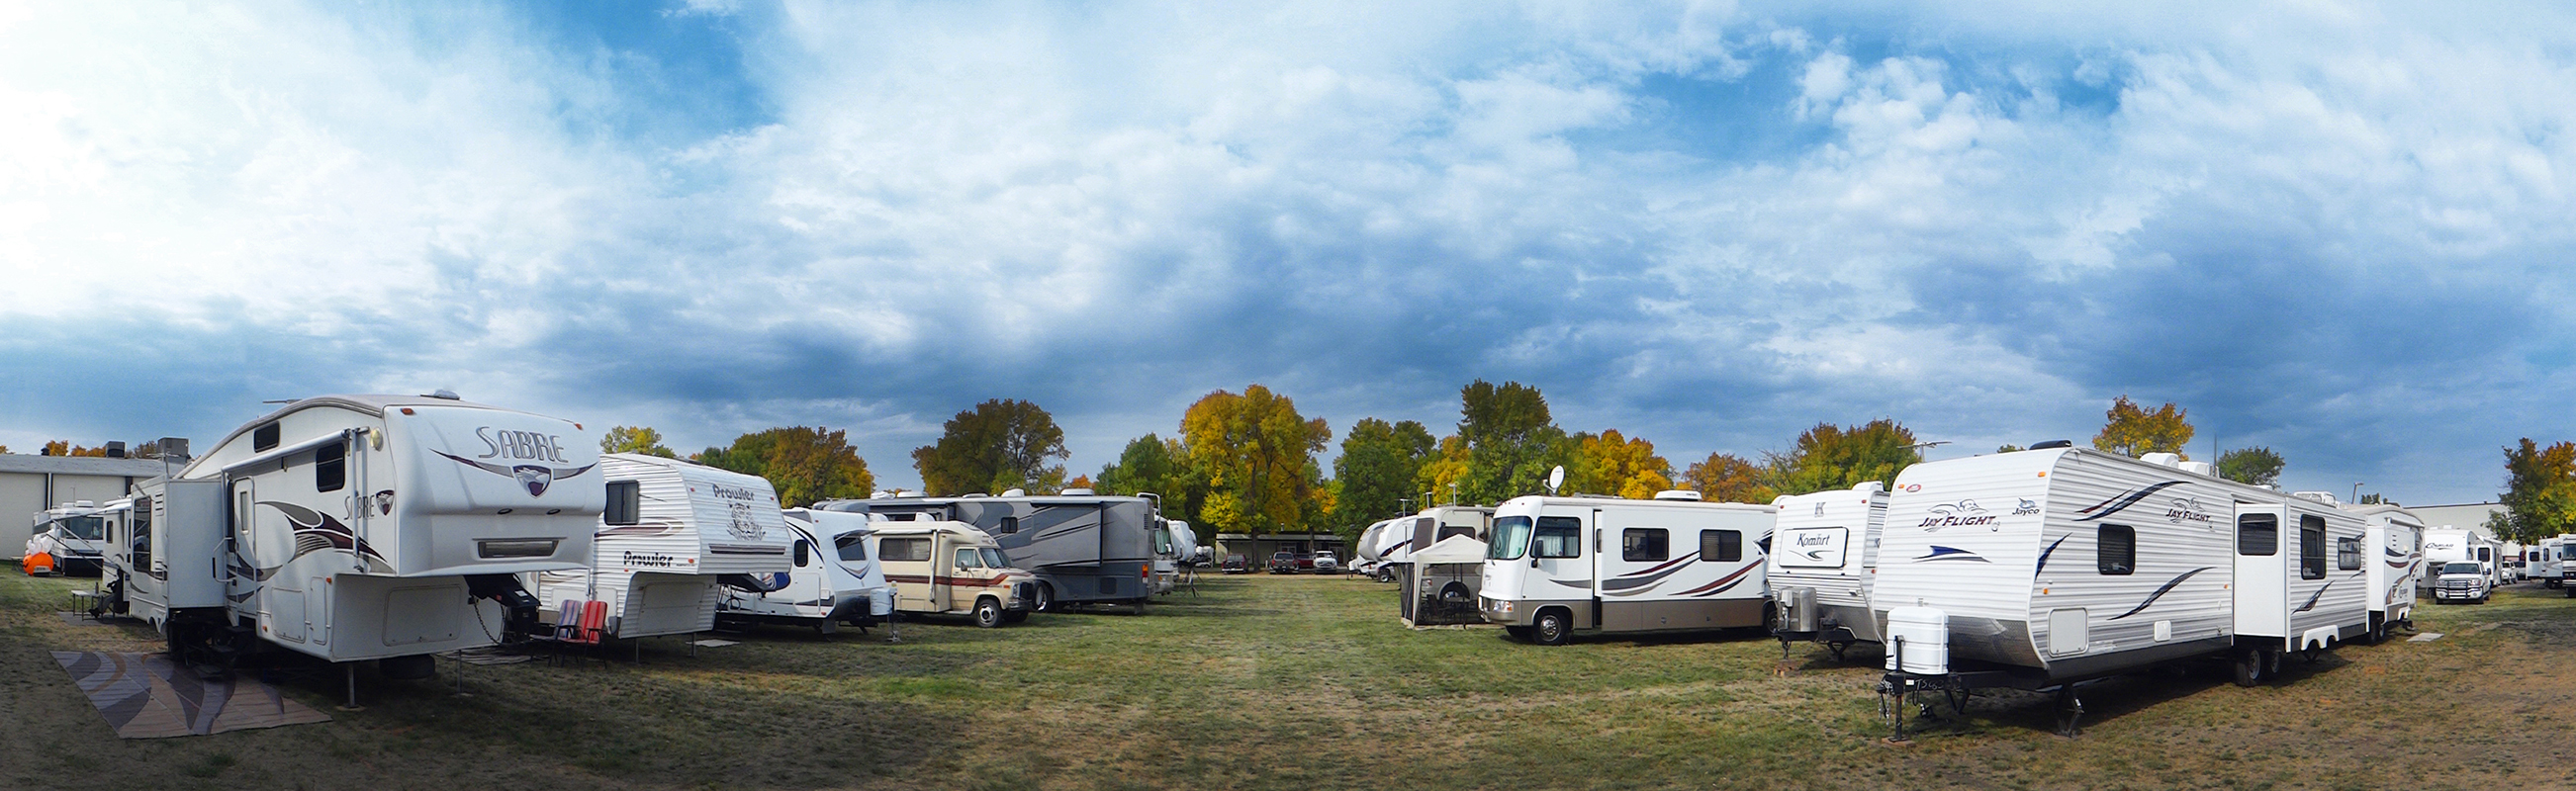 Hostfest_RV Parking